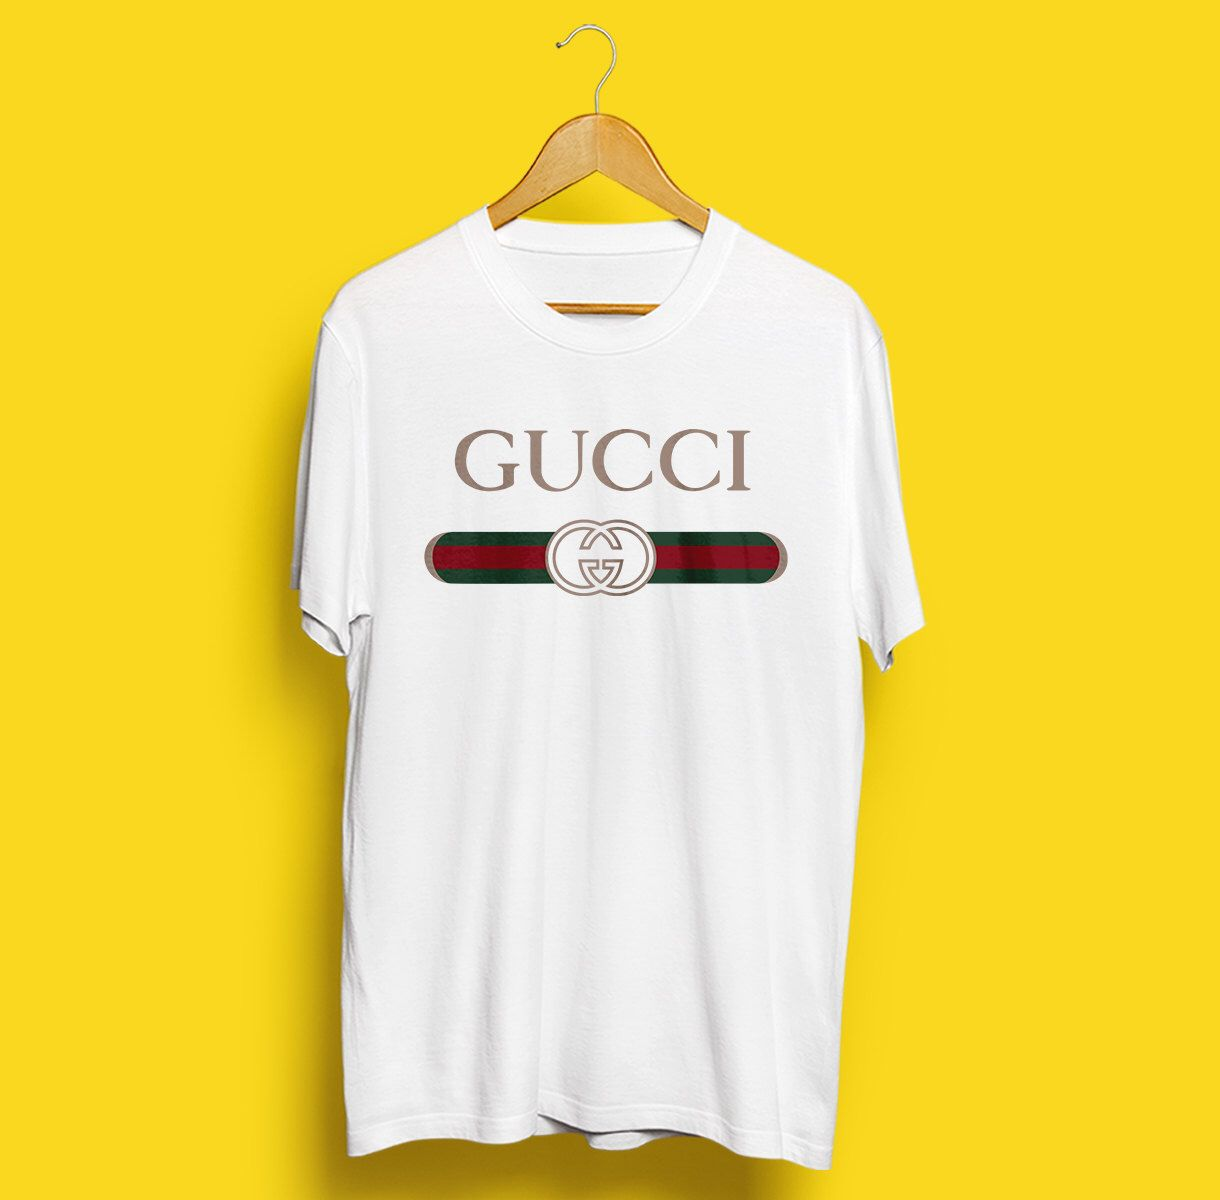 83d070c0921 Gucci Inspired Tshirt Chanel